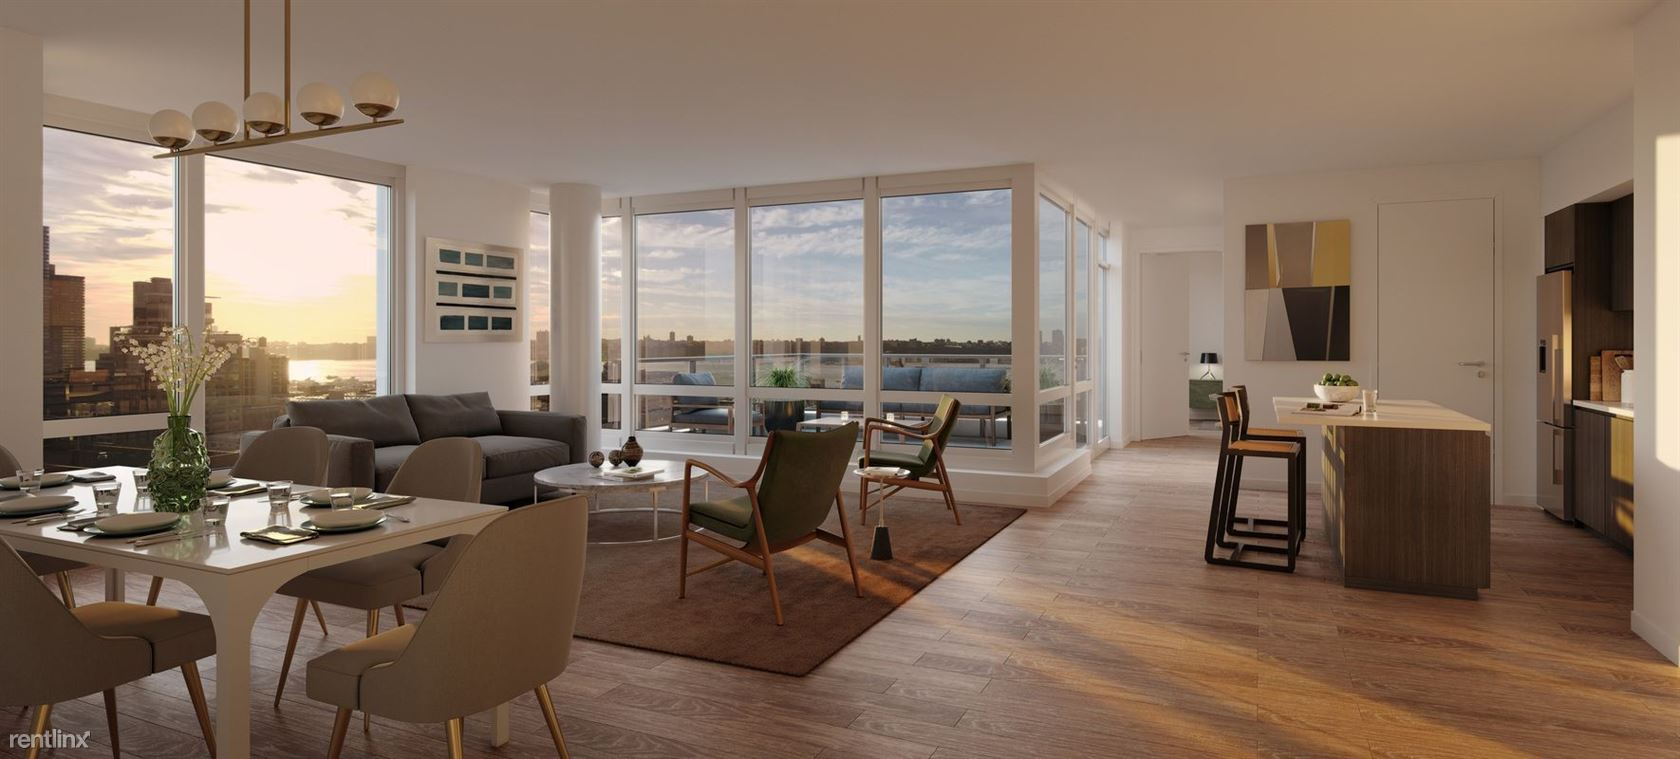 525 W 52nd St #14FS, New York, NY - $7,671 USD/ month